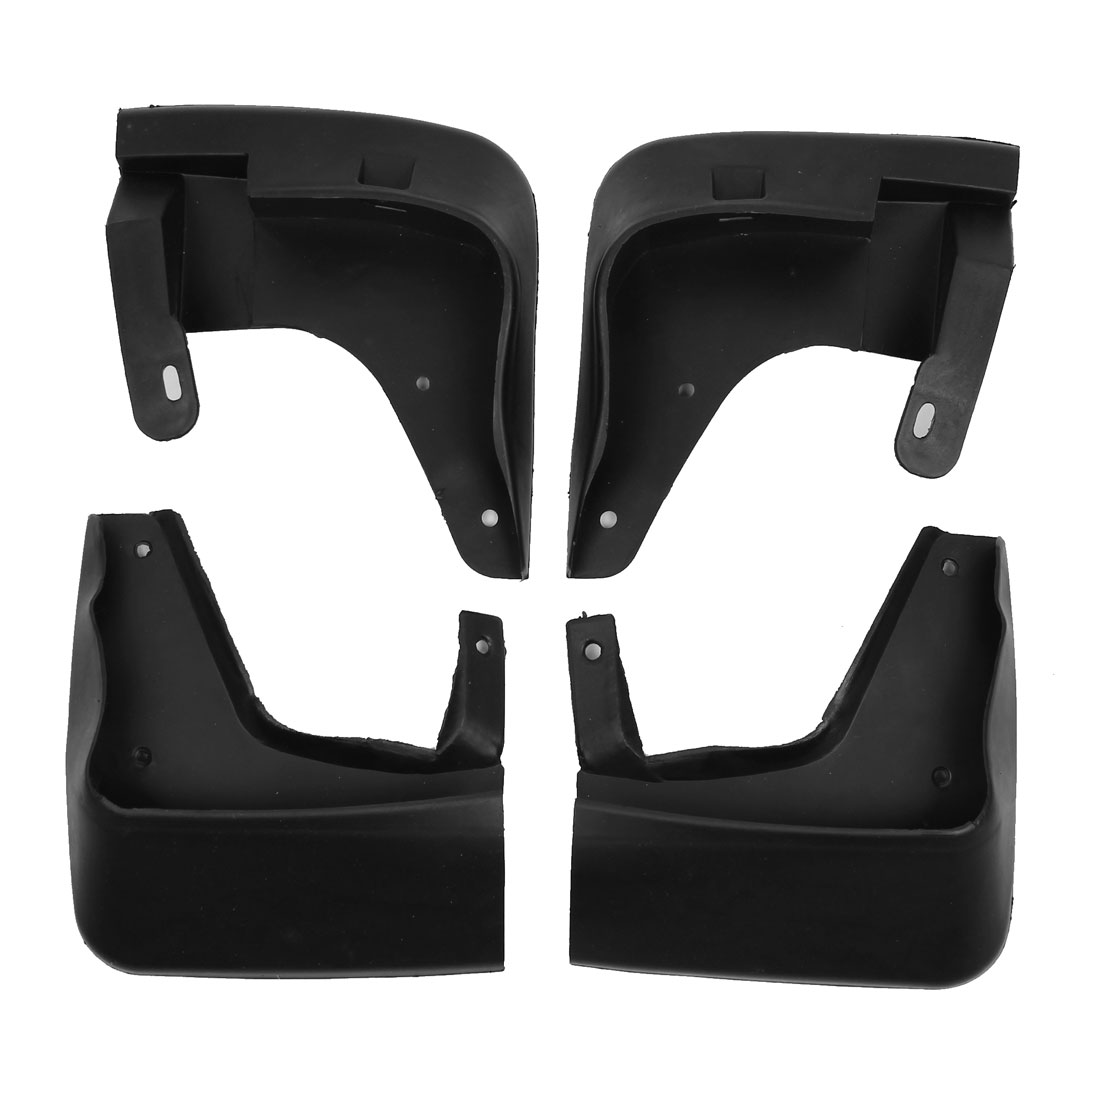 Car Shield Splash Guards Mud Flap Front Rear Set Assembly 4 in 1 86840-3D000 for Sonata